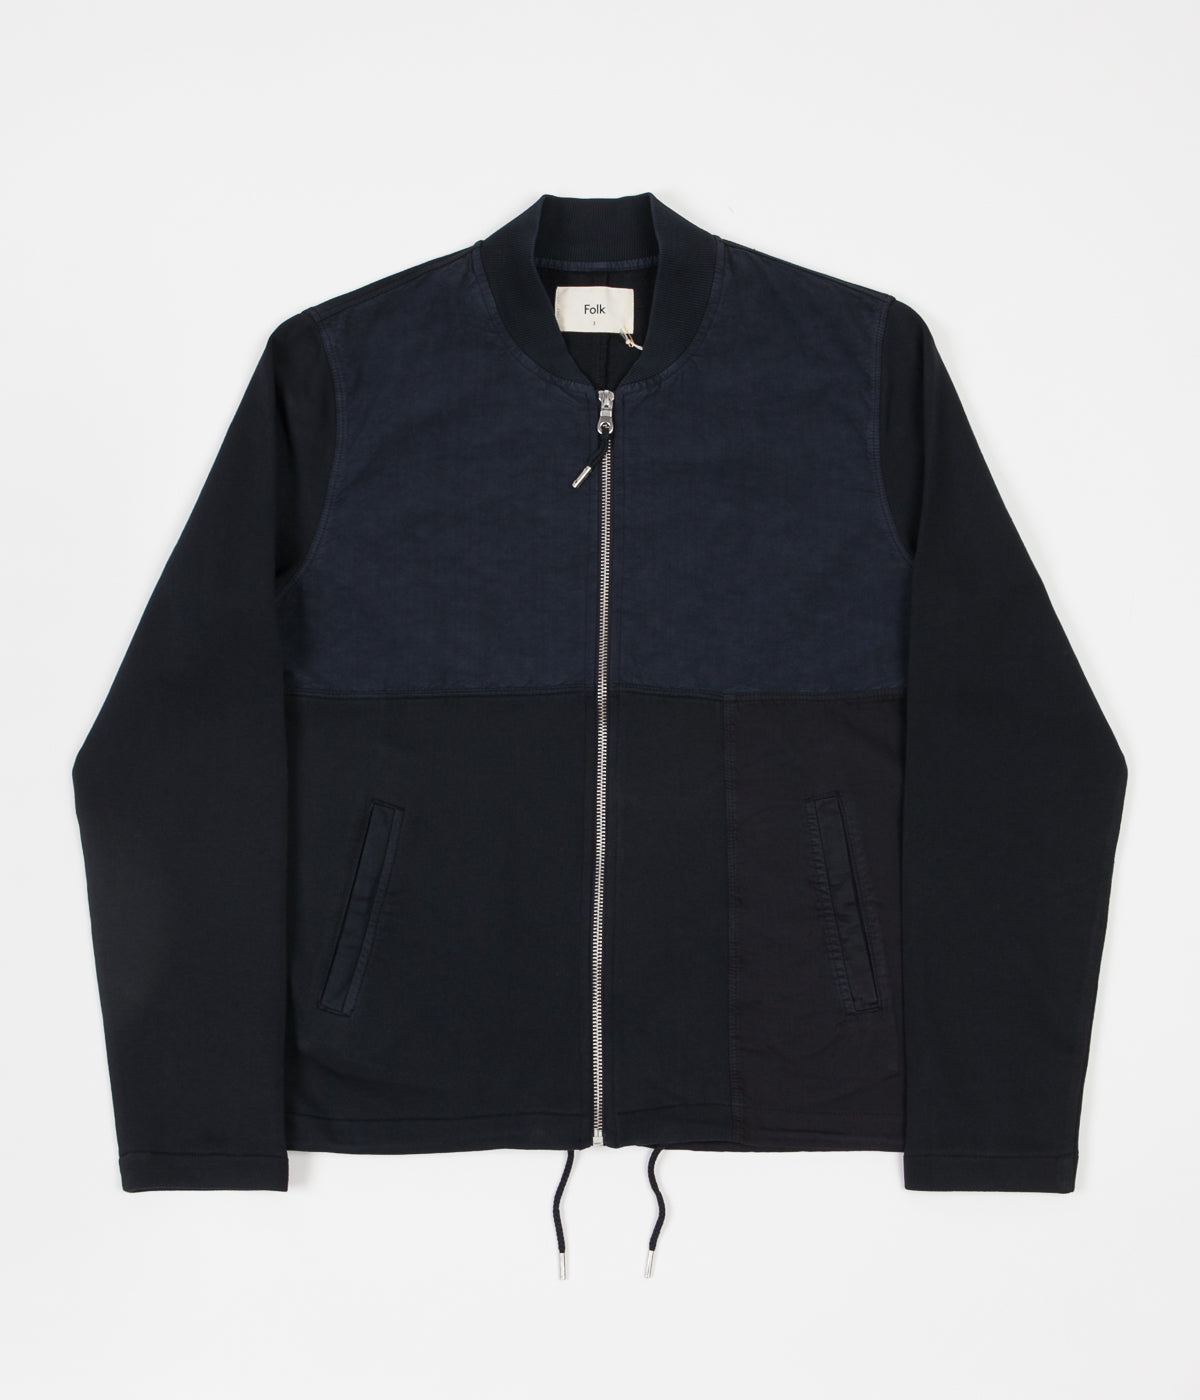 58bd2f91c Folk Combination Bomber Jacket - Navy | Always in Colour